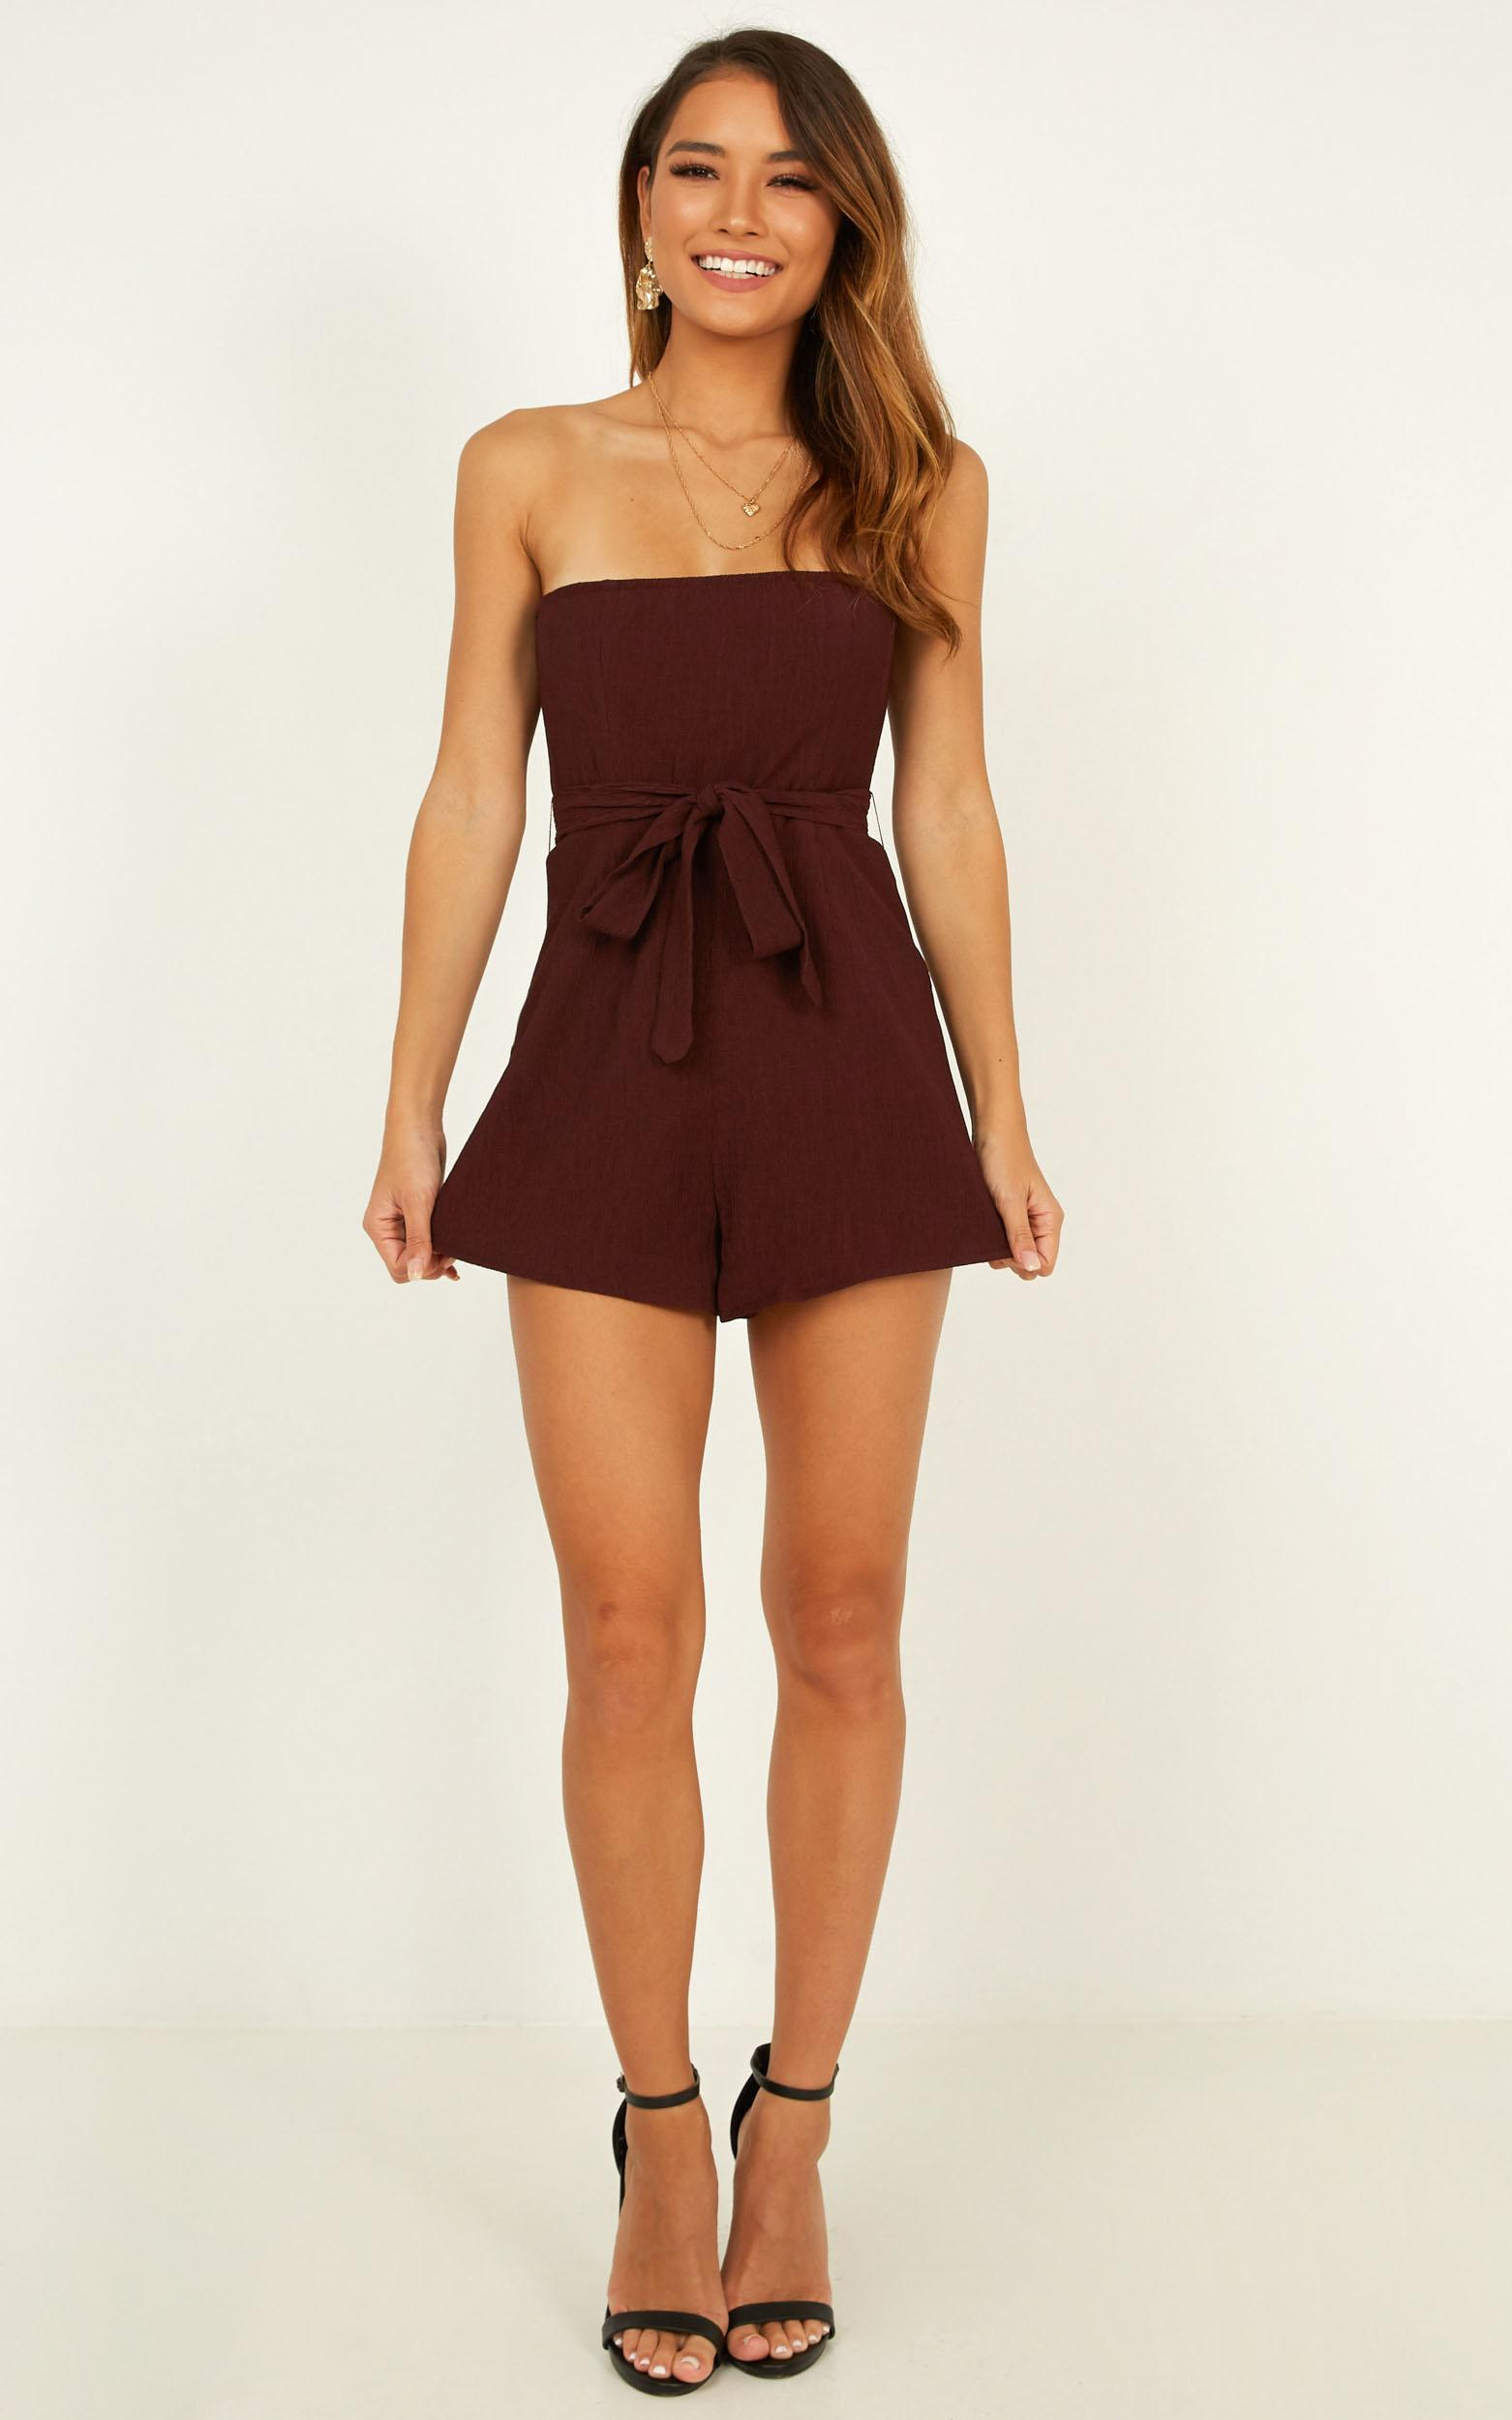 loved and lost Playsuit In plum - 20 (XXXXL), Plum, hi-res image number null